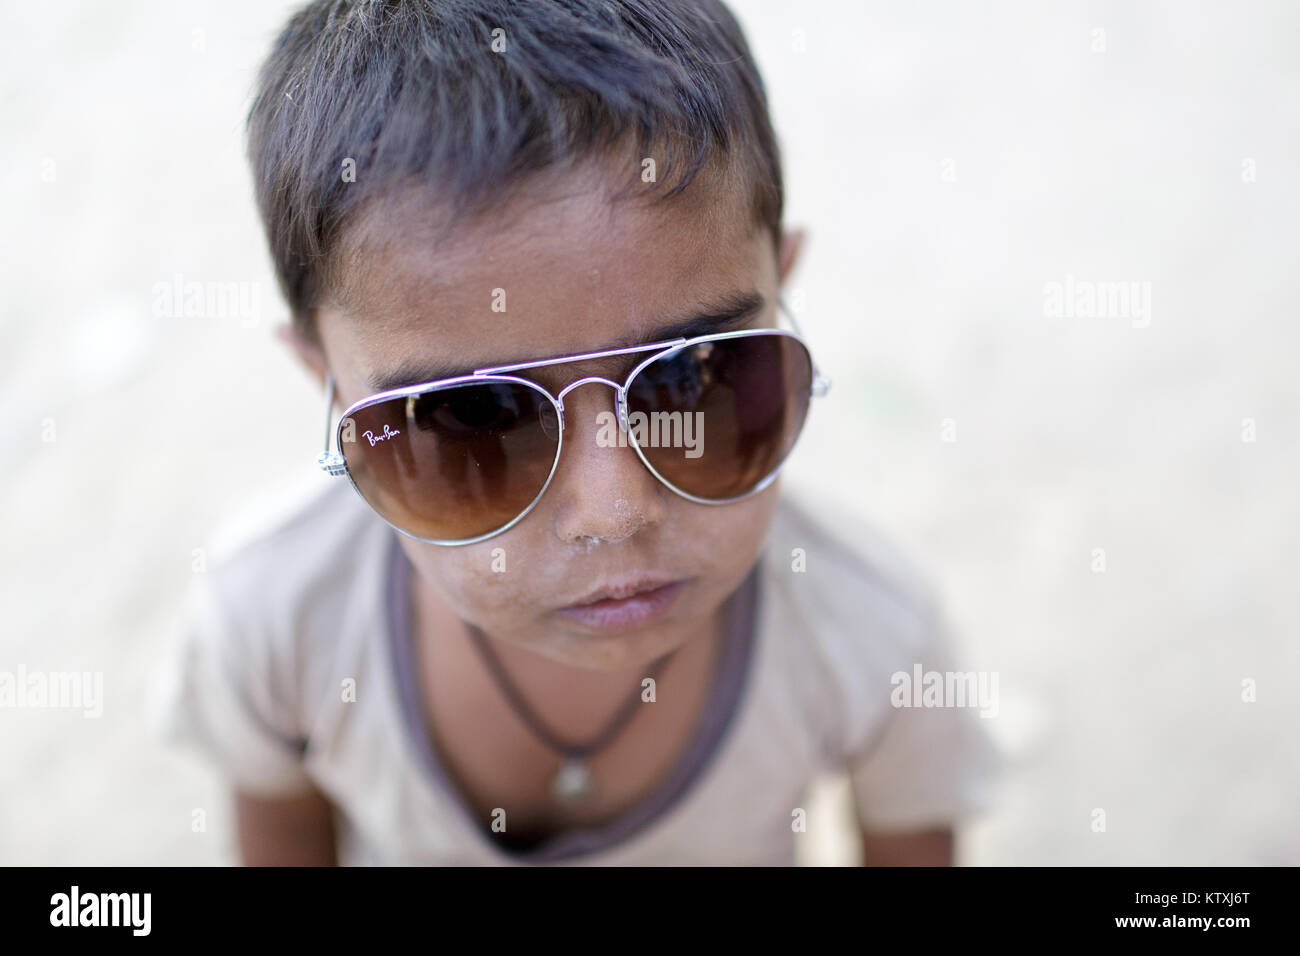 Small indian boy wearing oversized sunglasses, Village near Pushkar, Rajasthan, India. - Stock Image